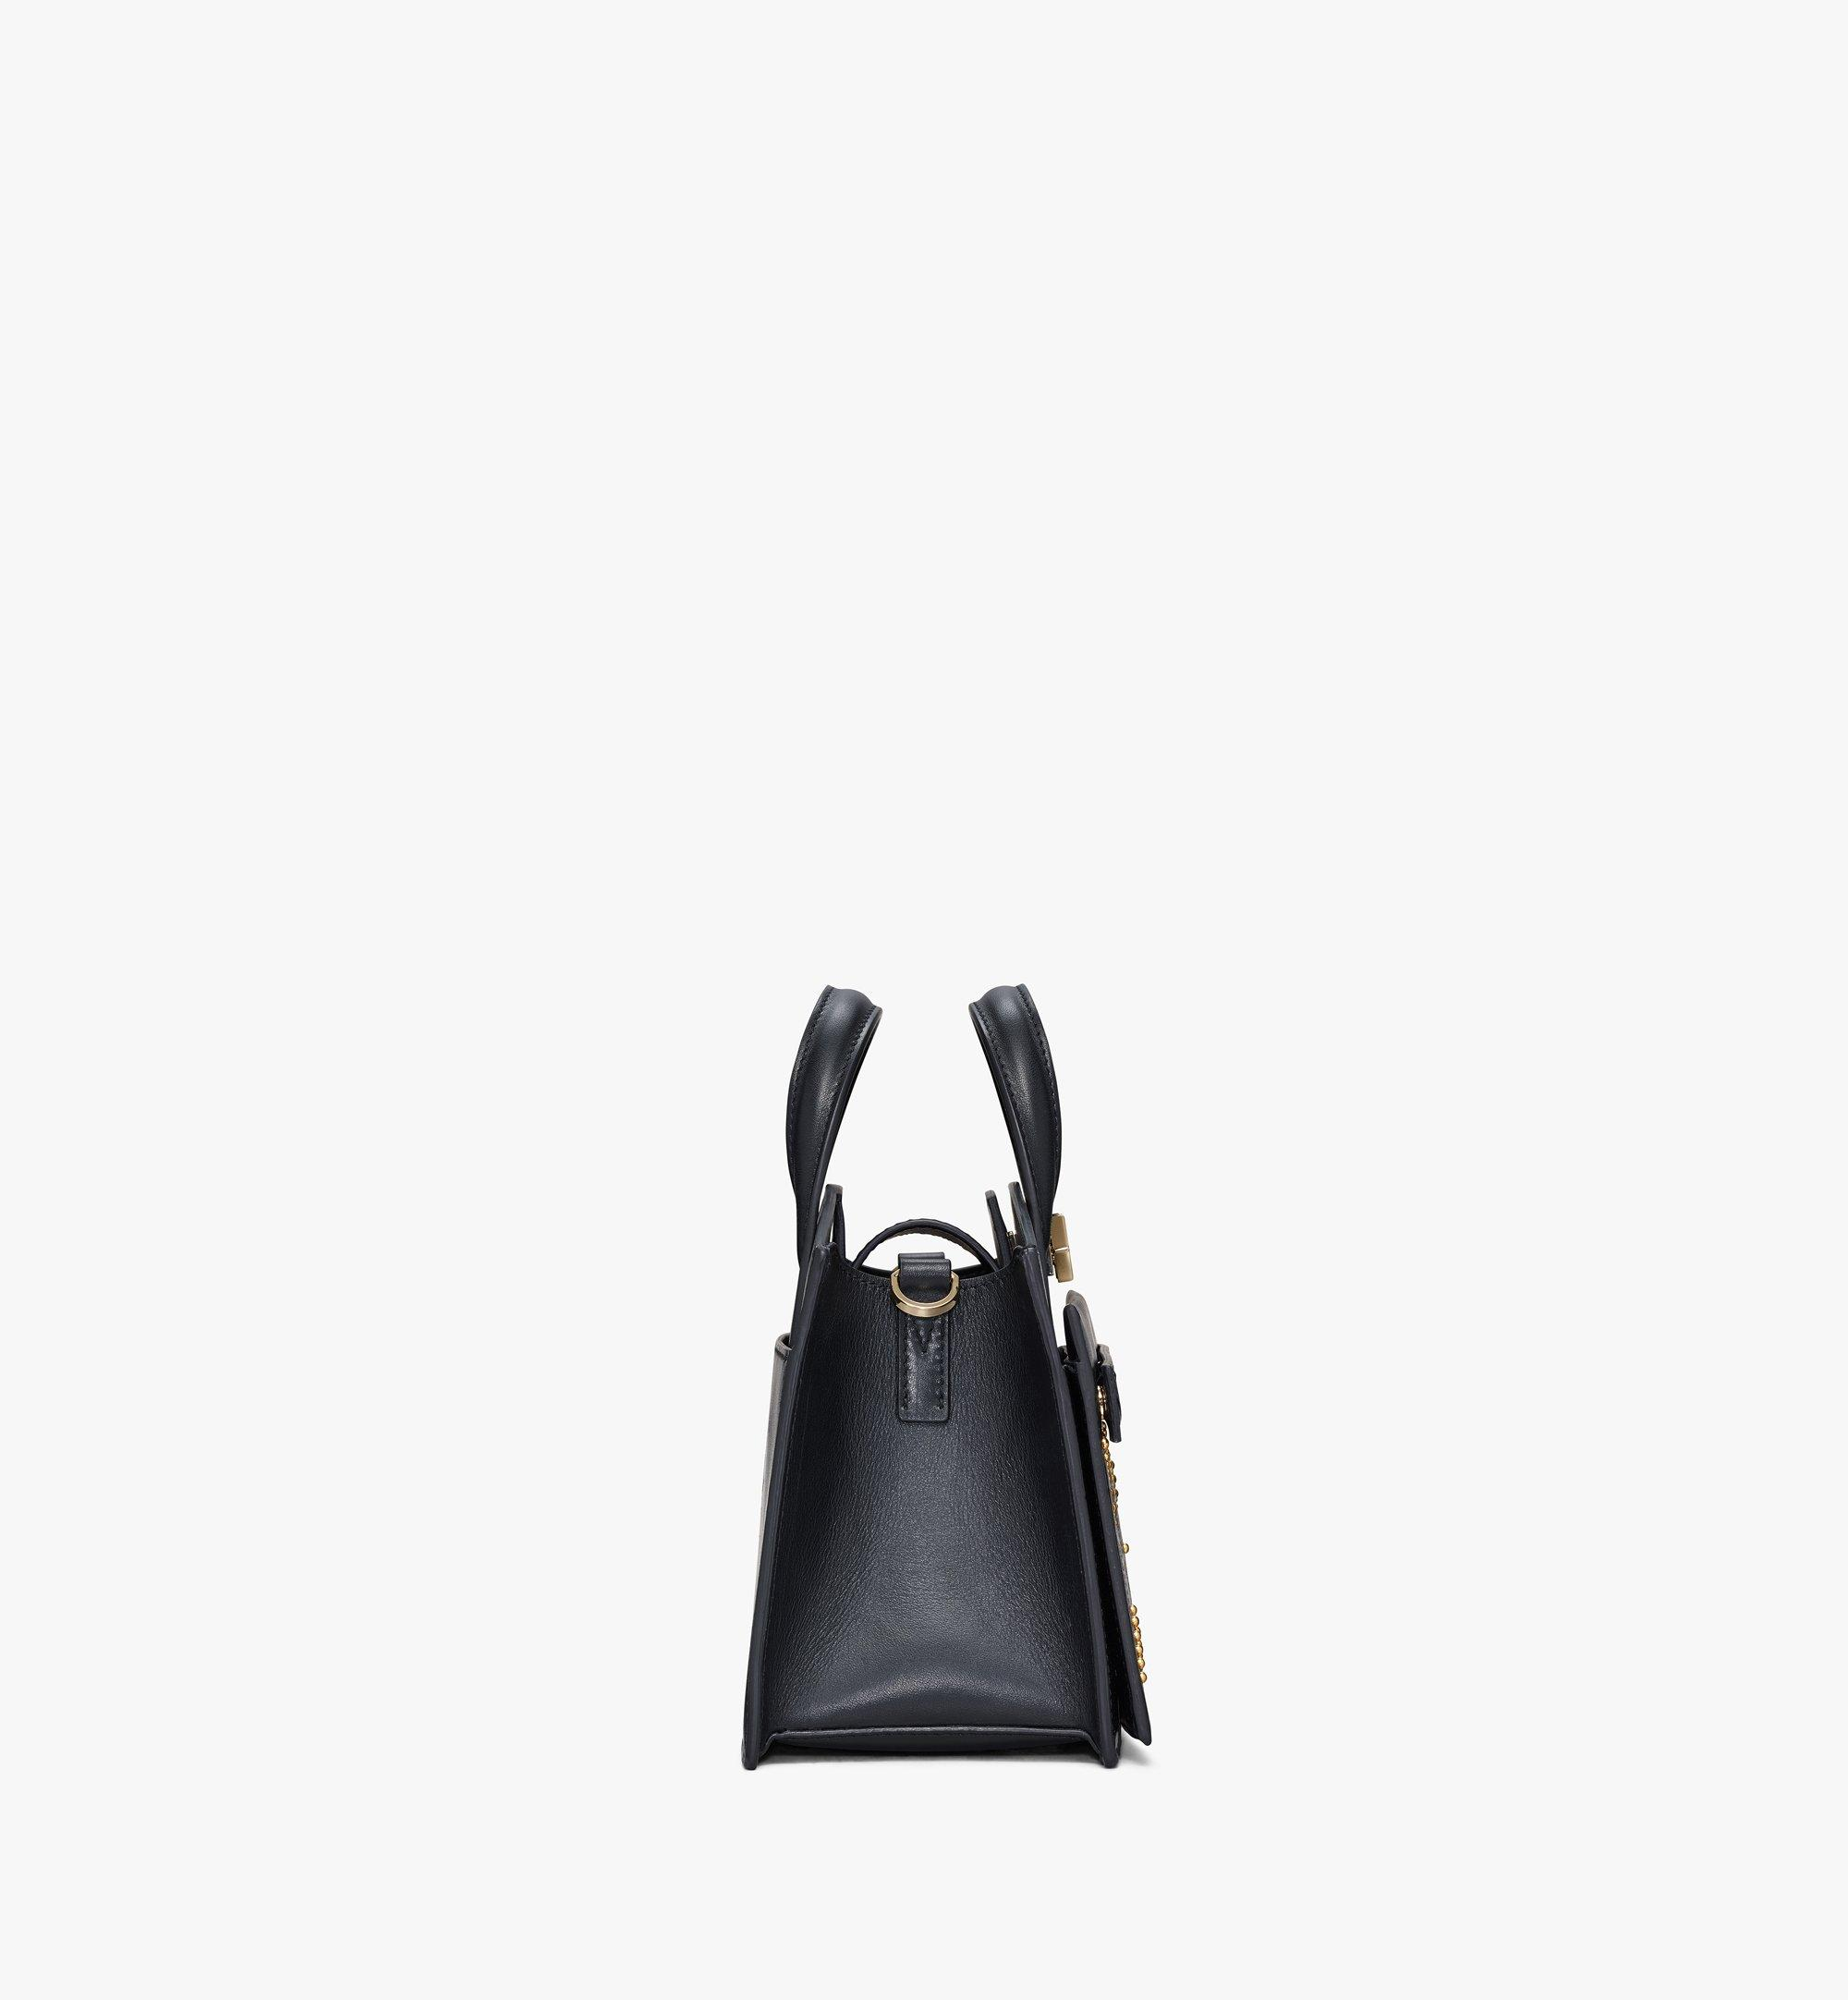 MCM Milano Lux Tote in Studded Leather Black MWTAADA04BK001 Alternate View 2